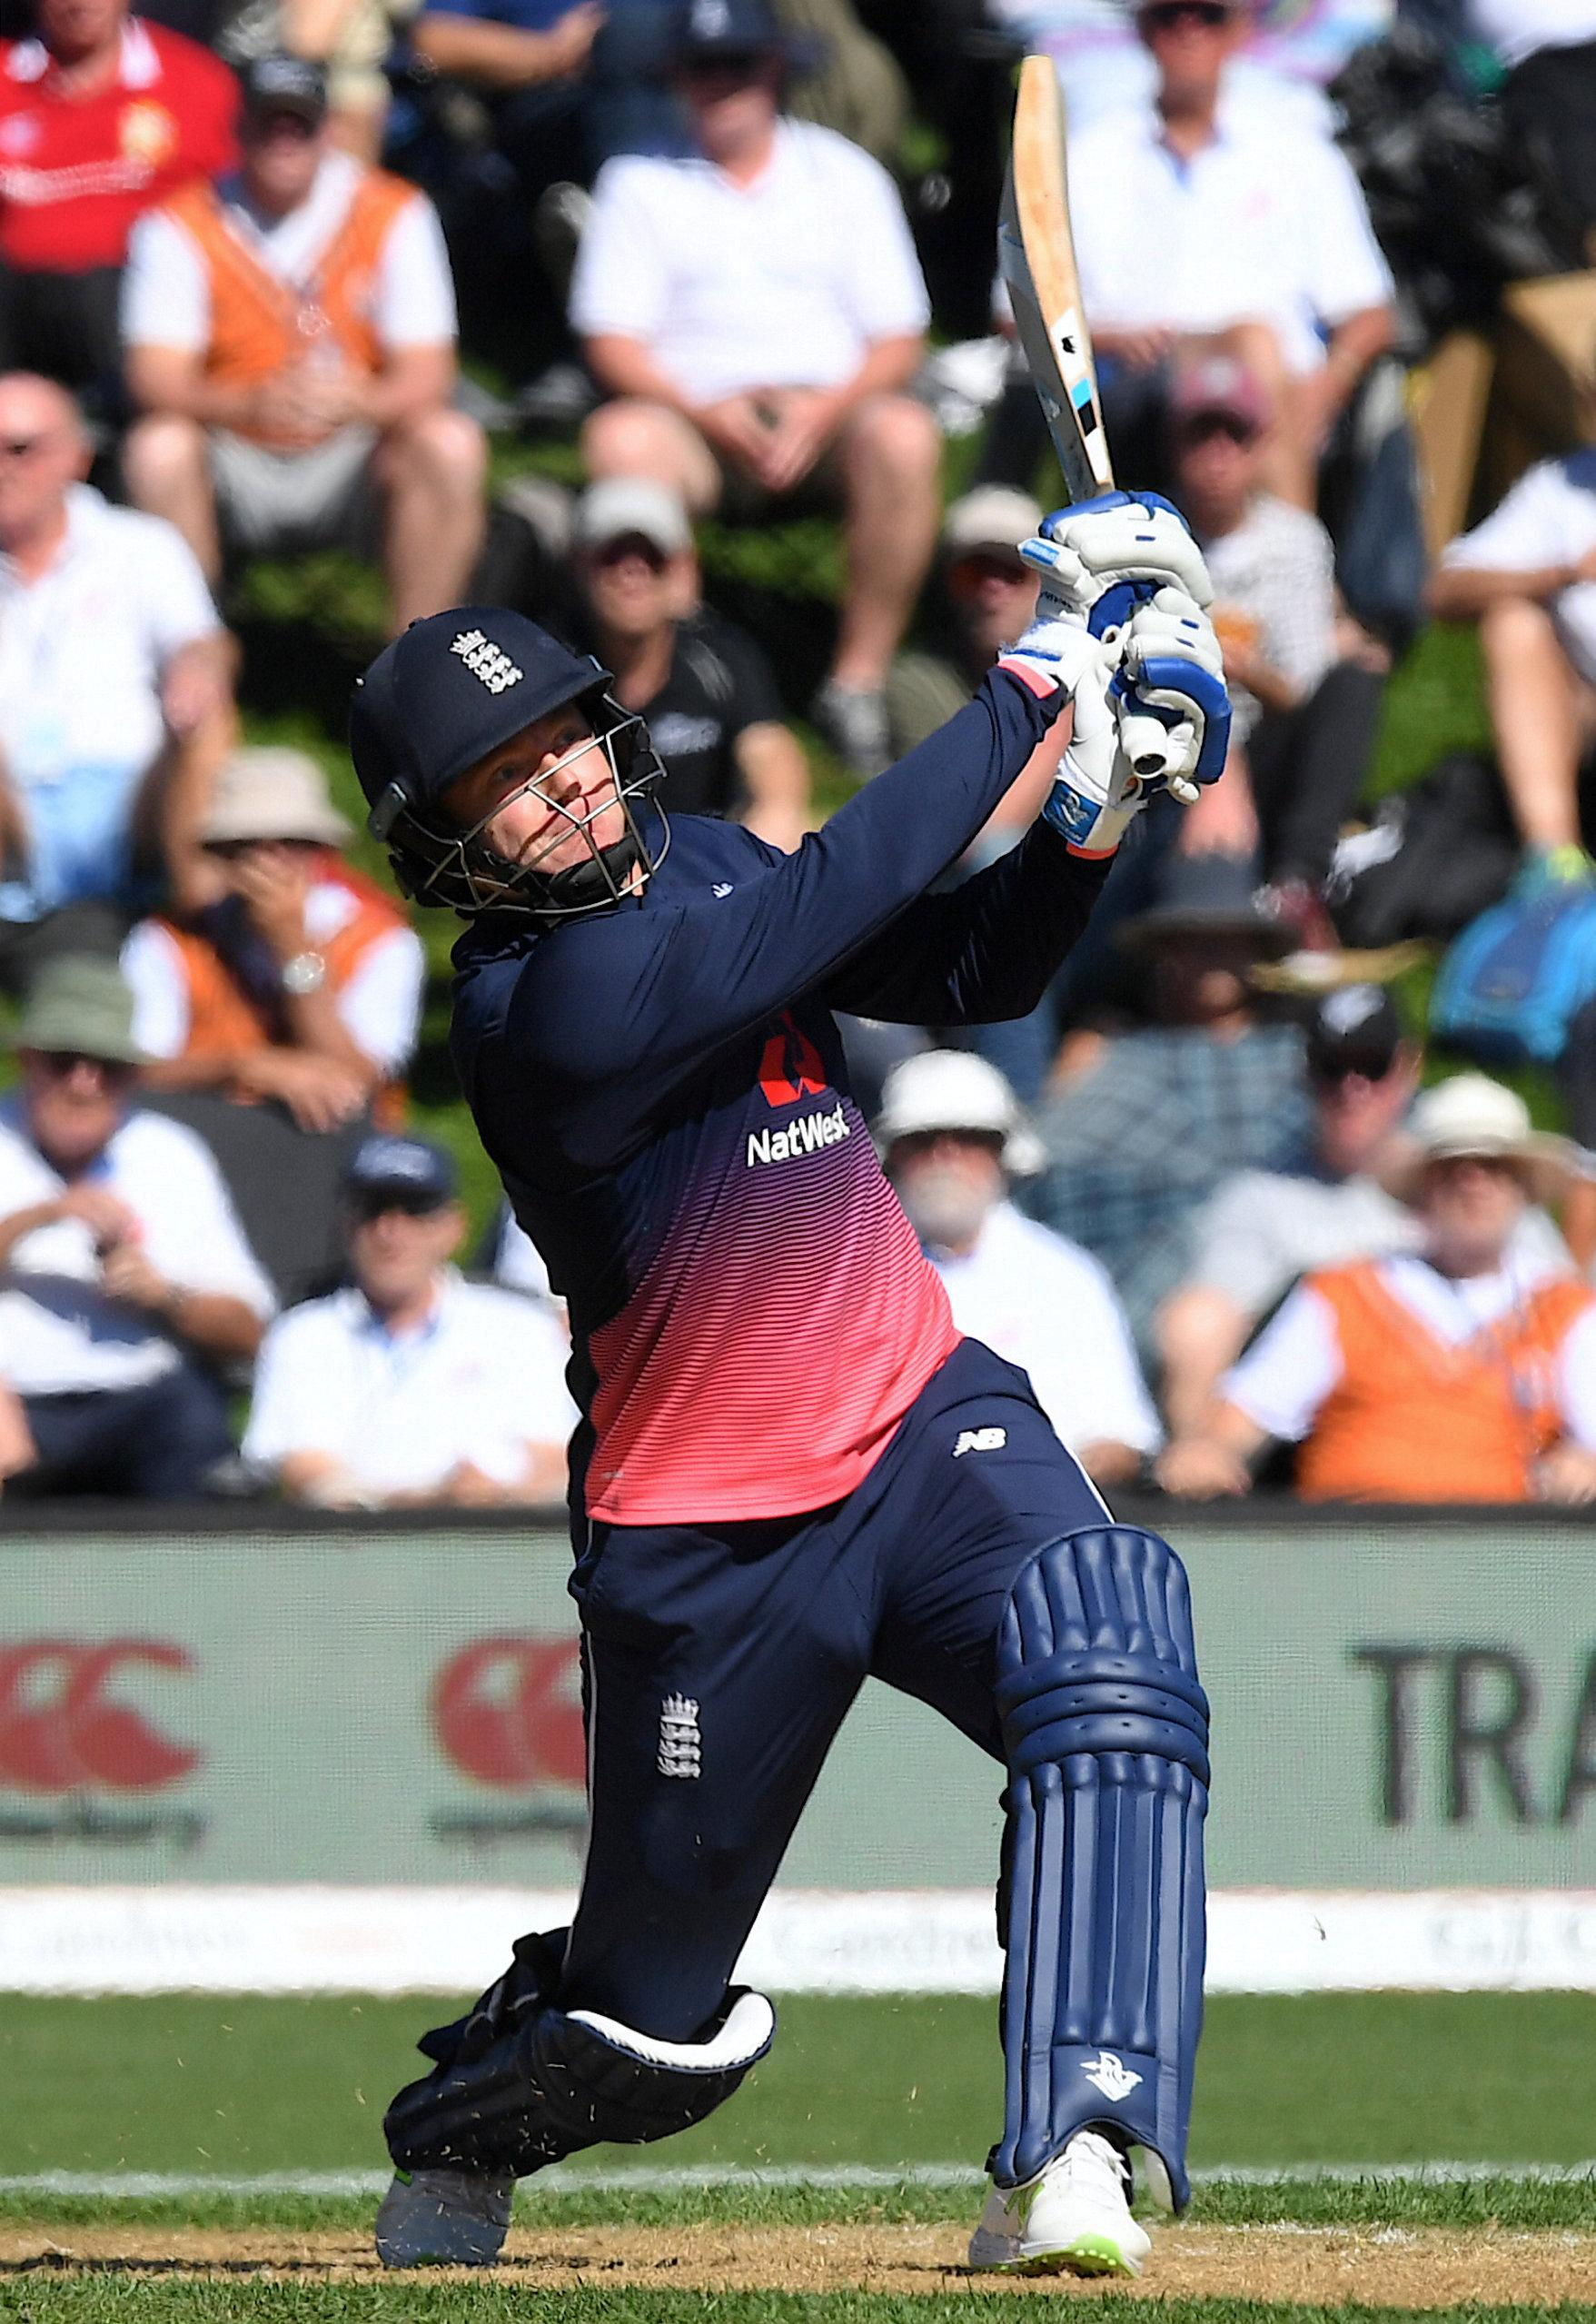 Jonny Bairstow had helped put England in a commanding position with his 137